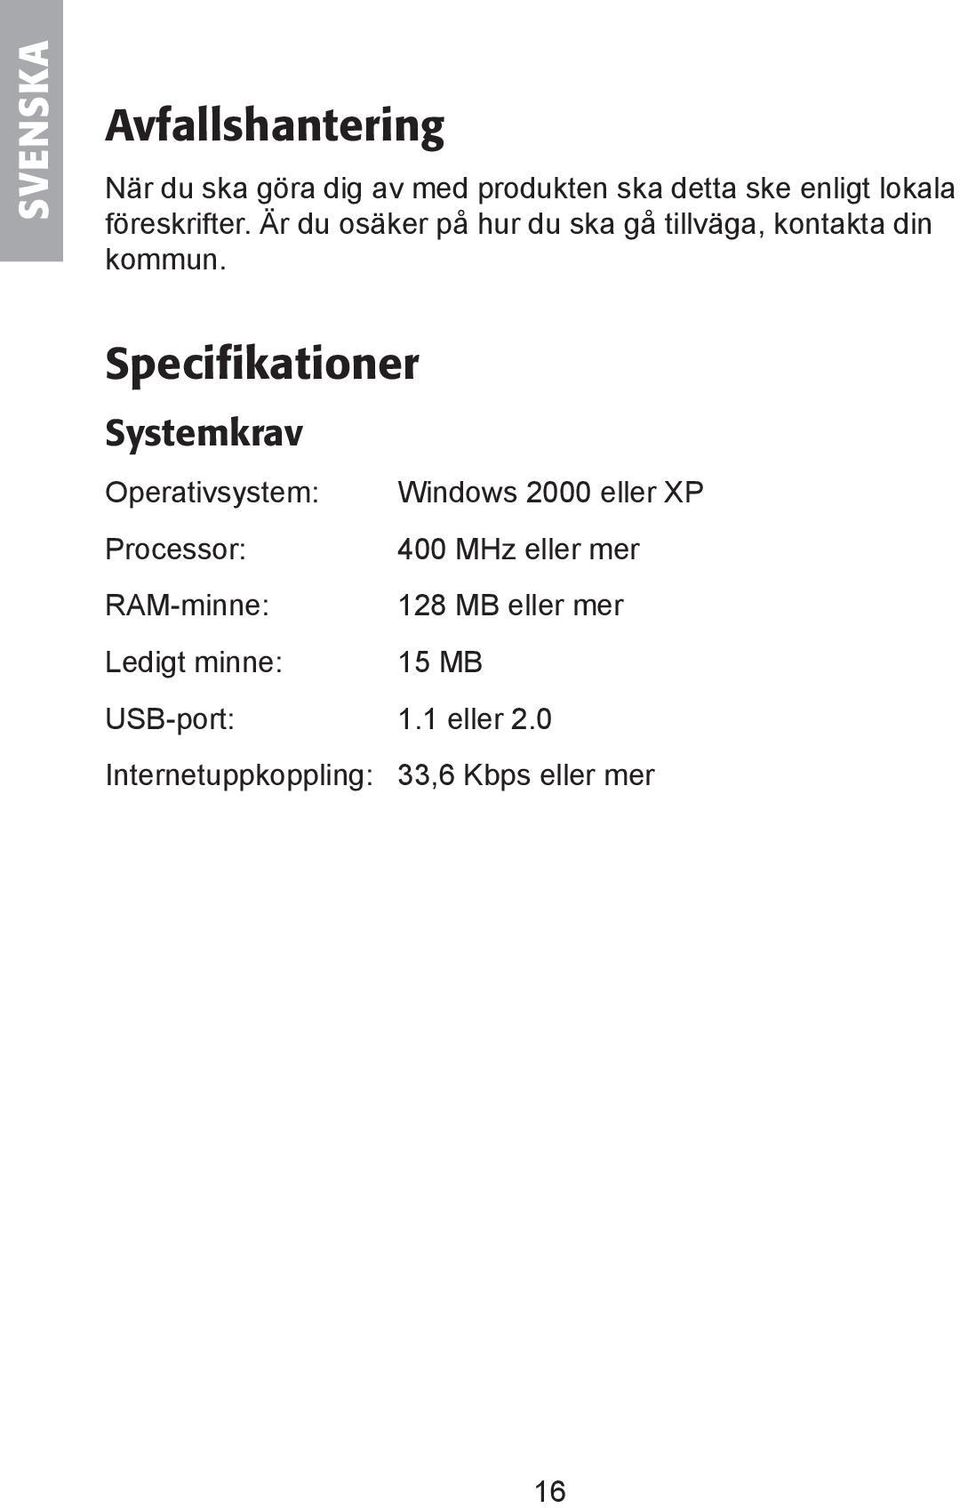 Specifikationer Systemkrav Operativsystem: Windows 2000 eller XP Processor: 400 MHz eller mer